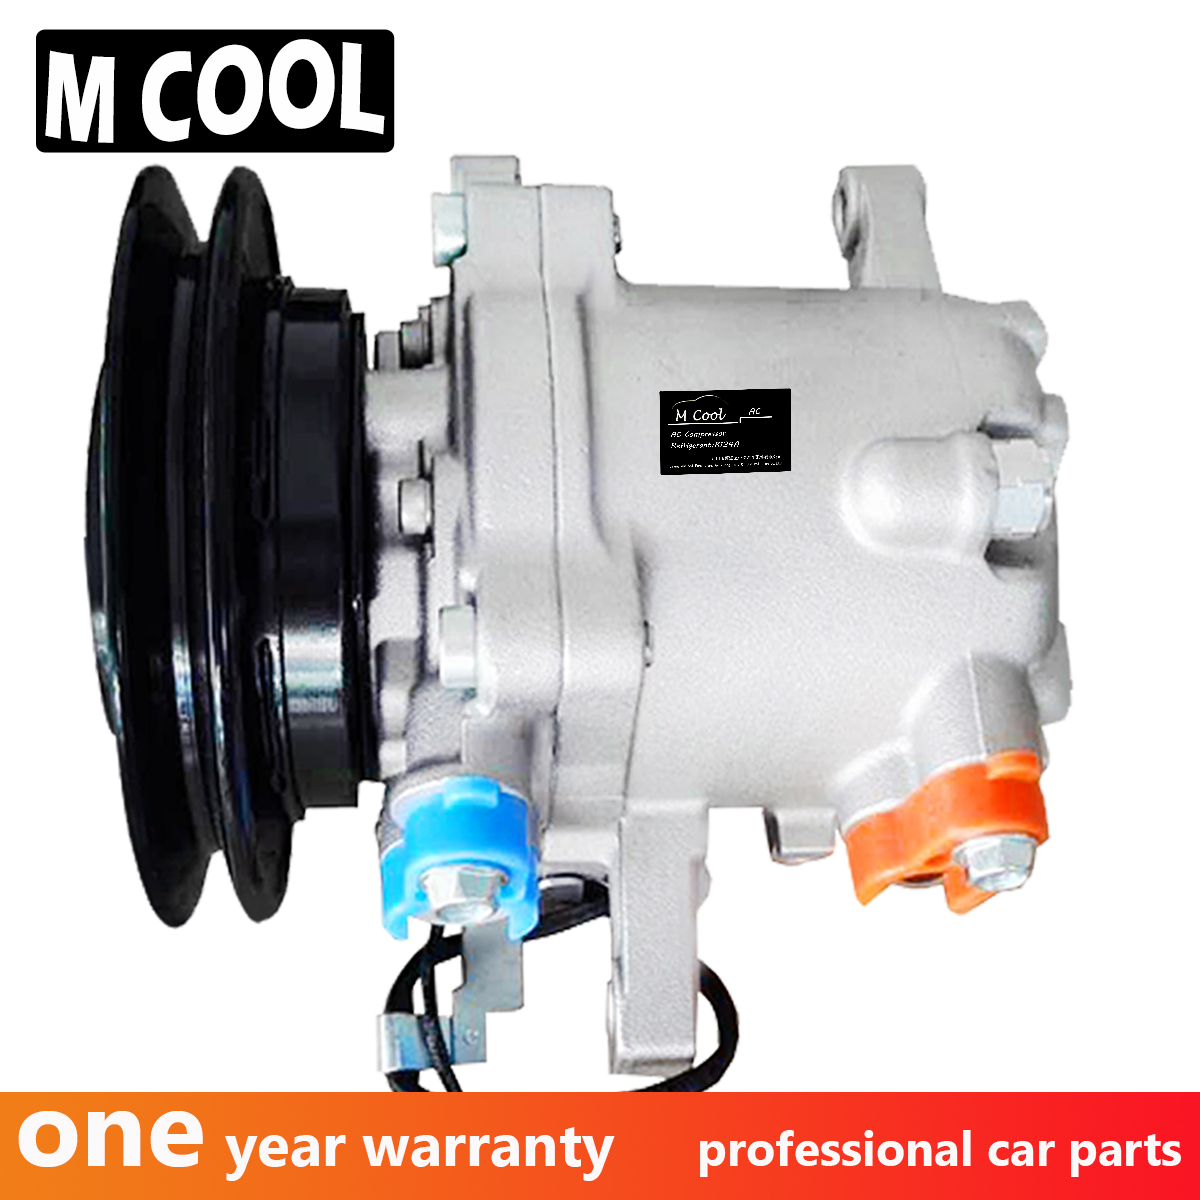 For Brand New SVO7E AC Compressor Kubota M108S M5040 M7040 M8540 Tractor SV07E 3C581 97590 3C581 50060 447220 6750 447200 9130 in Air conditioning Installation from Automobiles Motorcycles